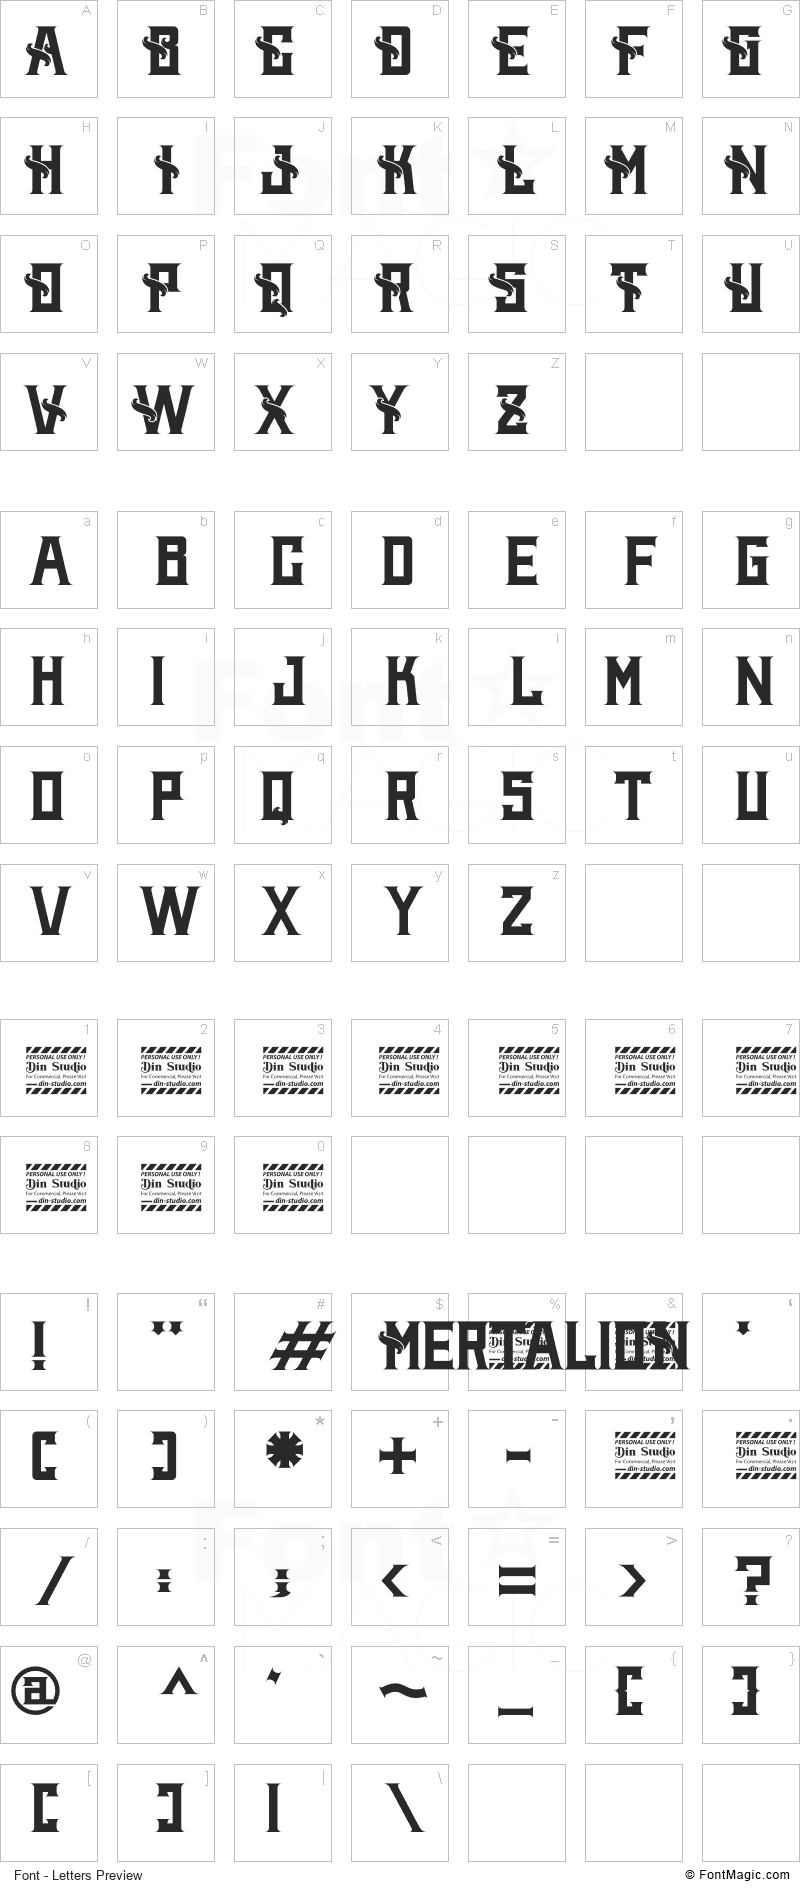 Mertalion Font - All Latters Preview Chart